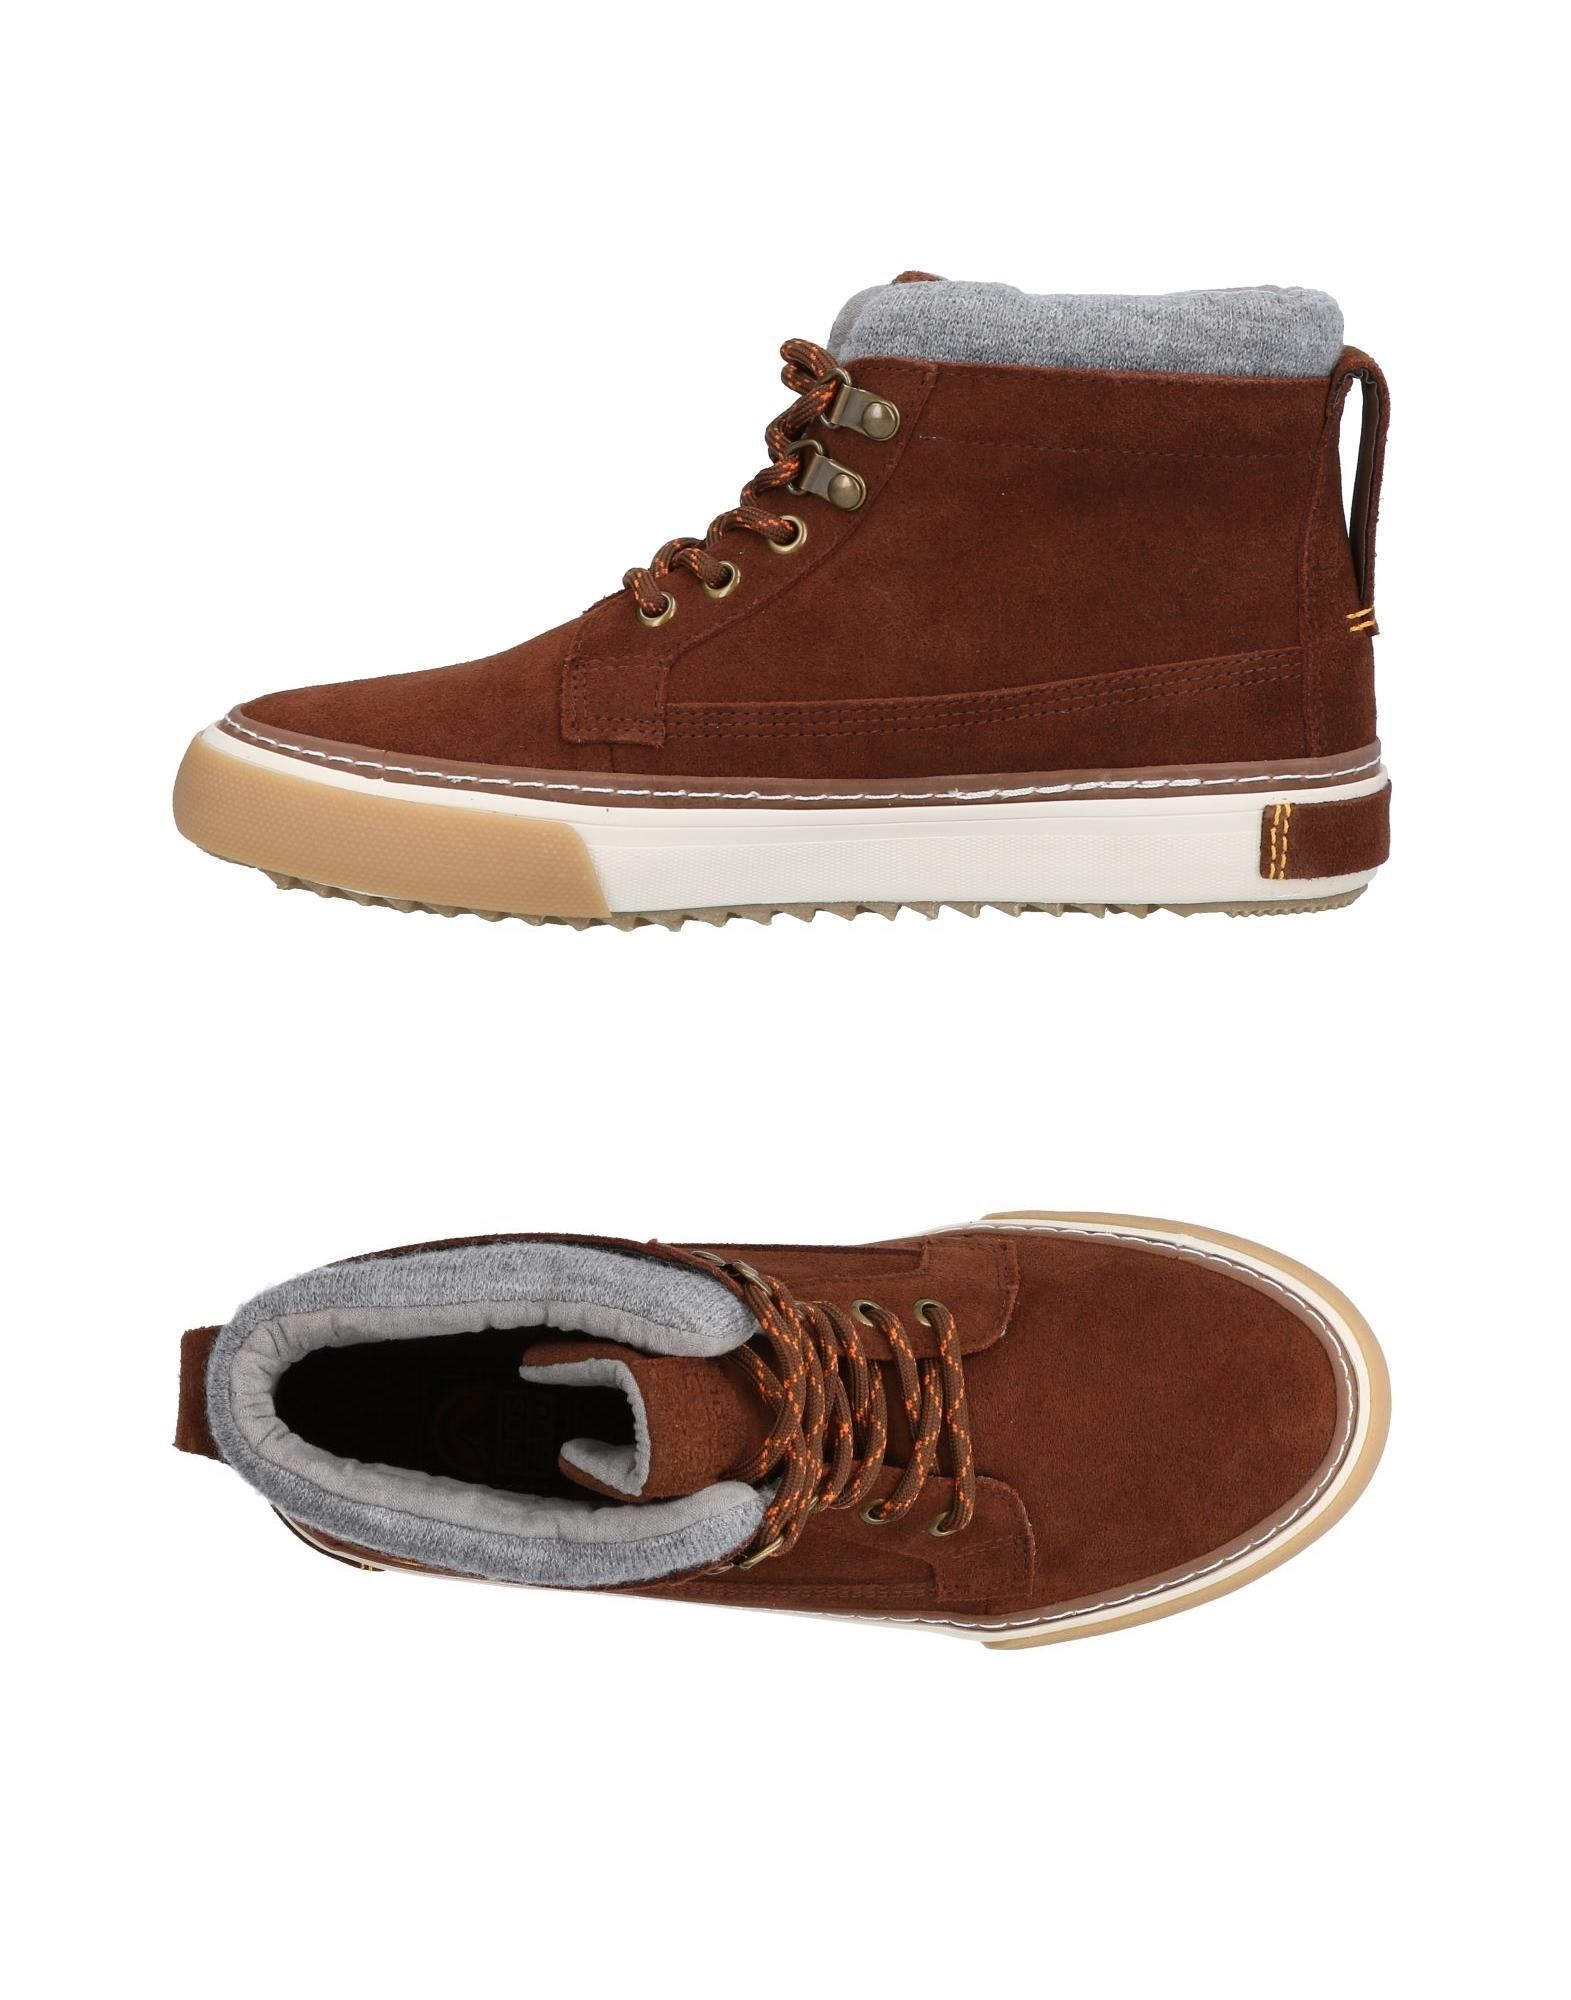 Sneakers Gioseppo Homme - Sneakers Gioseppo  Marron Chaussures casual sauvages